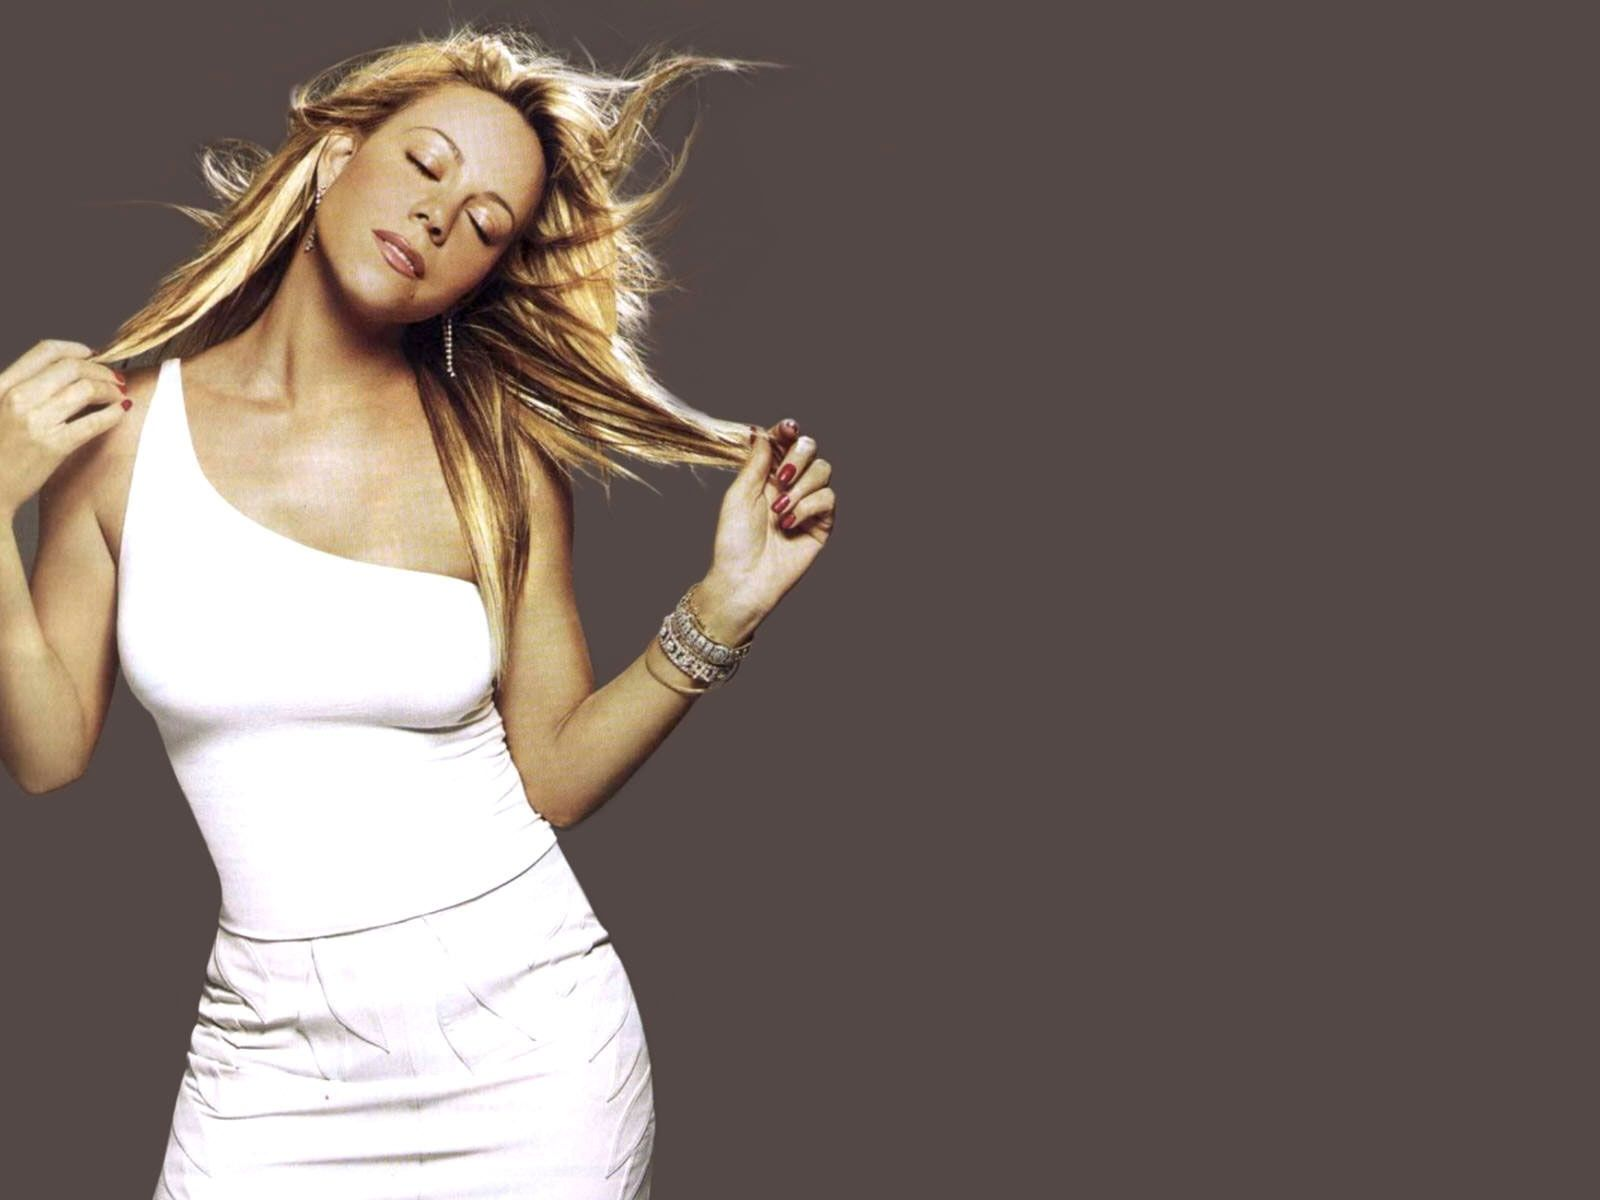 1600x1200 Mariah Carey wallpaper high quality and definition | HD Wallpapers ...